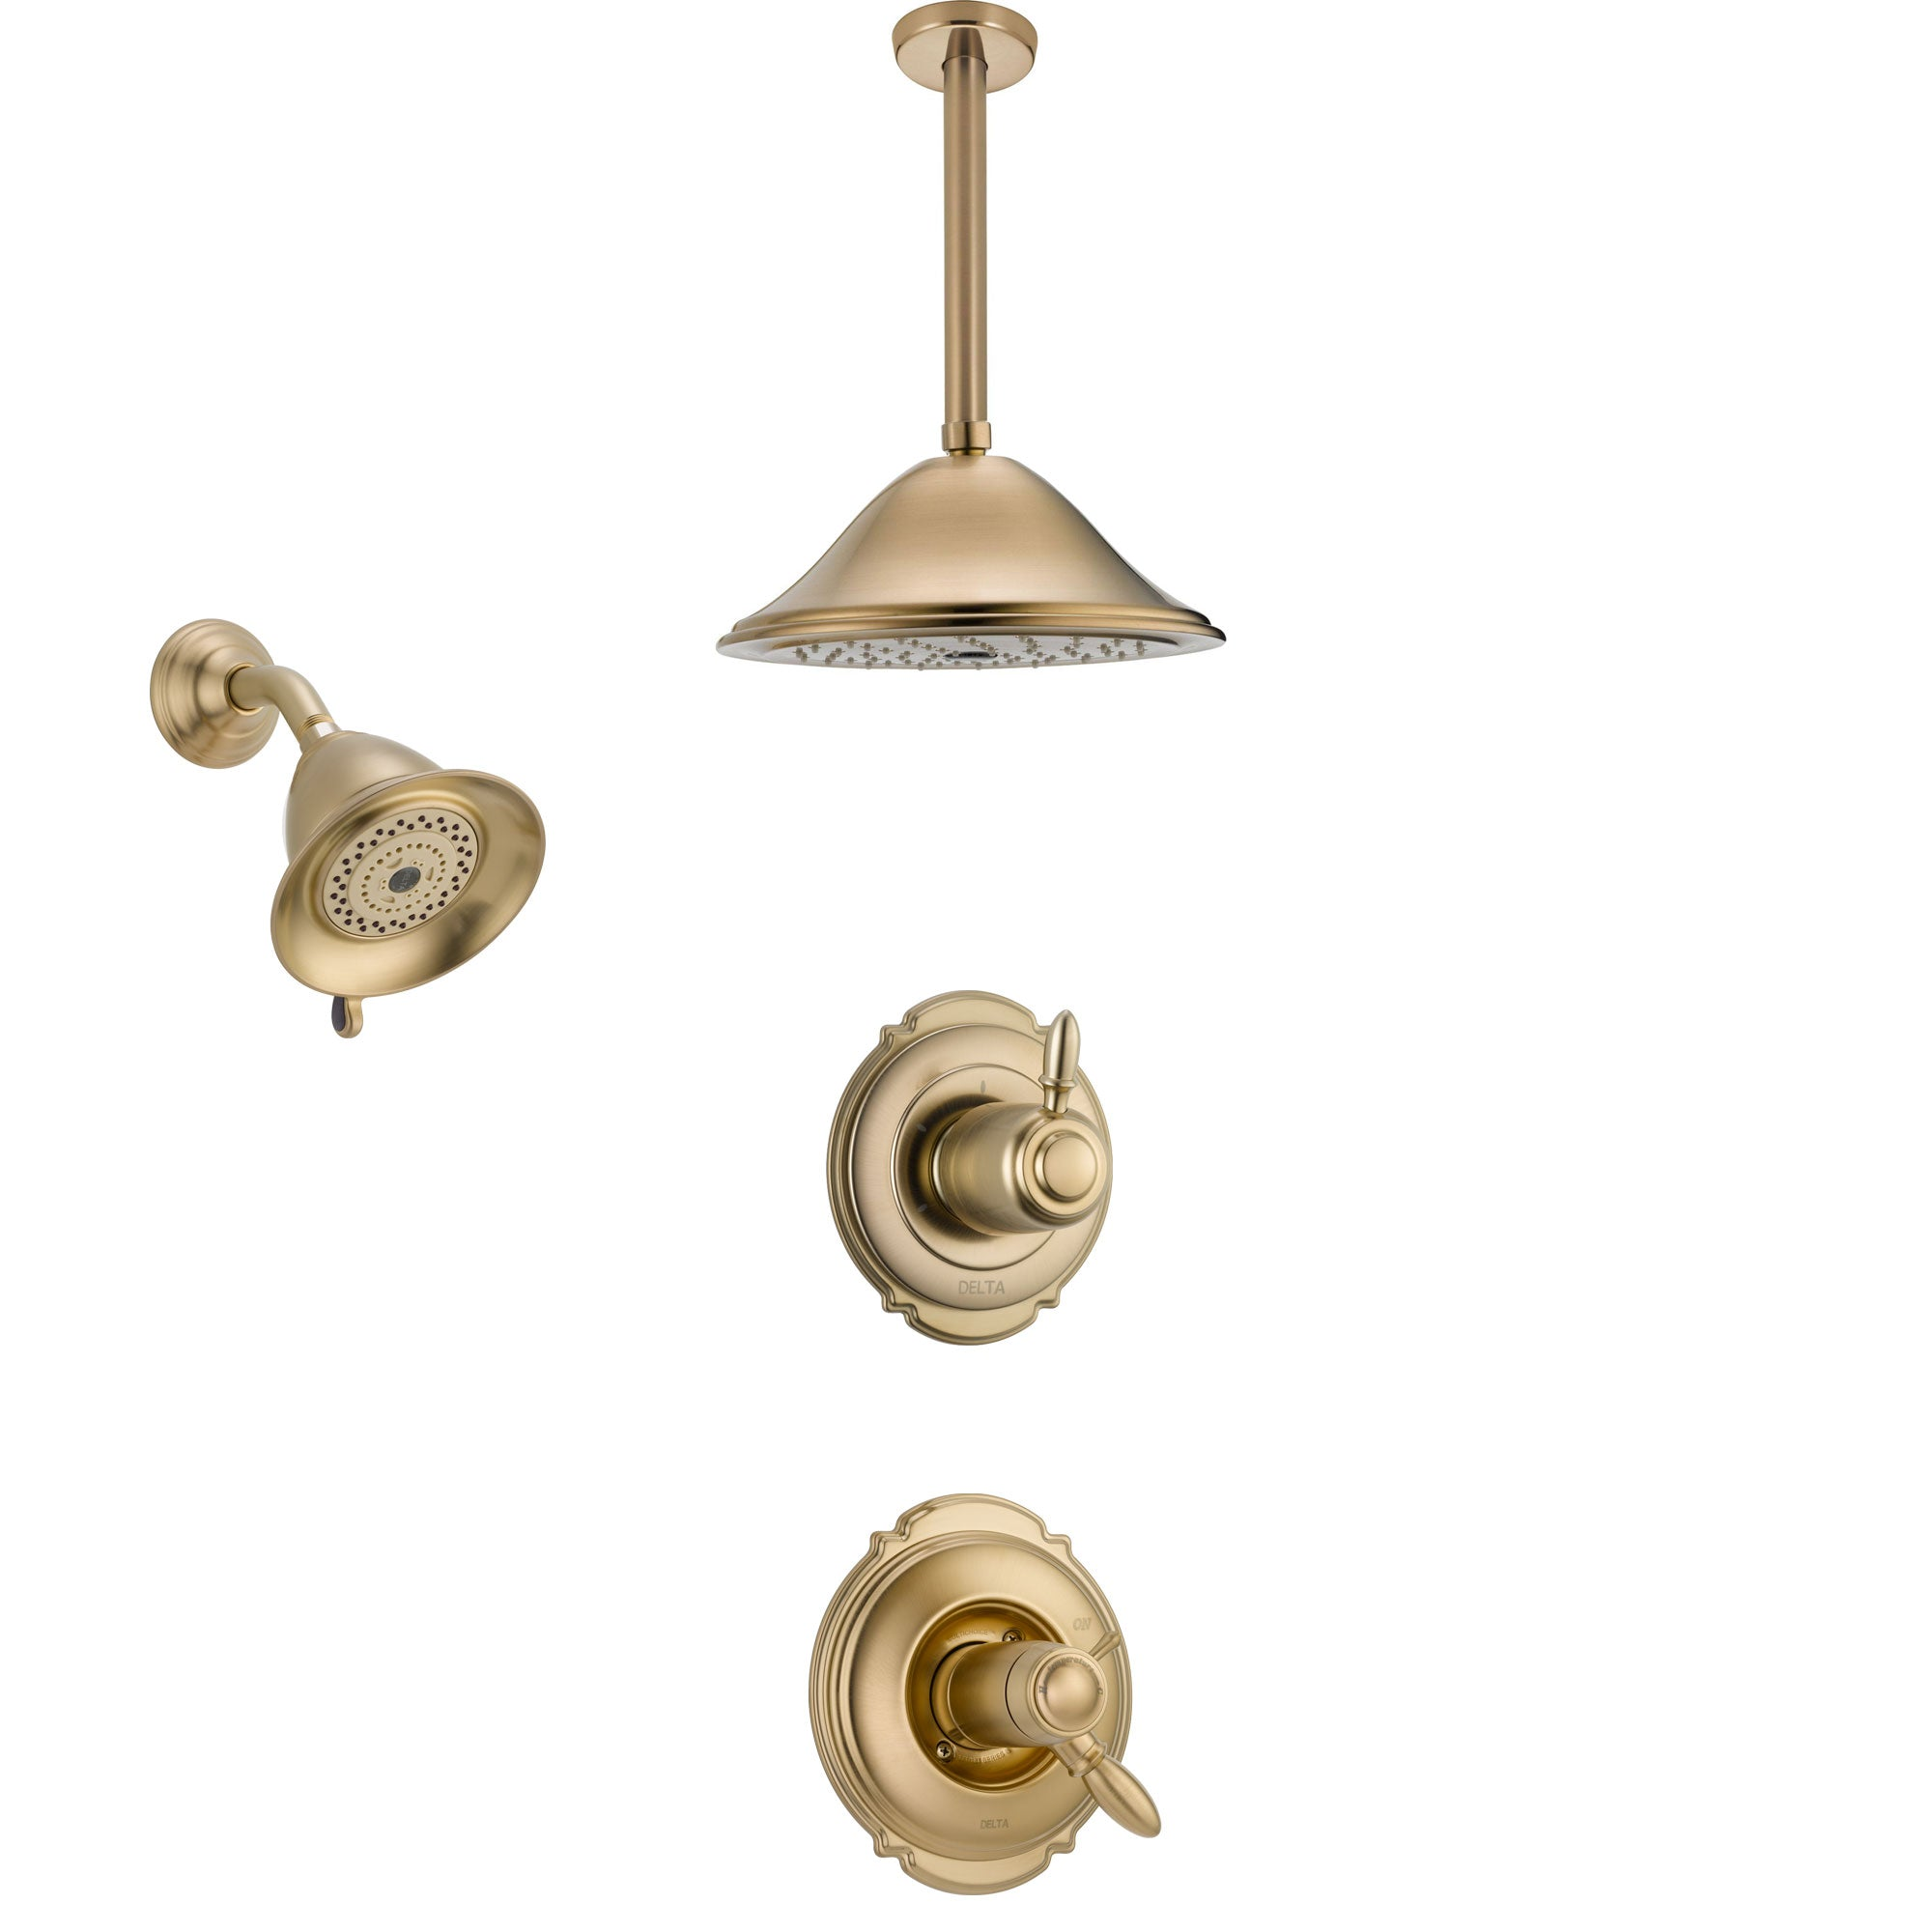 Delta Victorian Champagne Bronze Shower System with Dual Thermostatic Control Handle, Diverter, Showerhead, and Ceiling Mount Showerhead SS17T2552CZ5